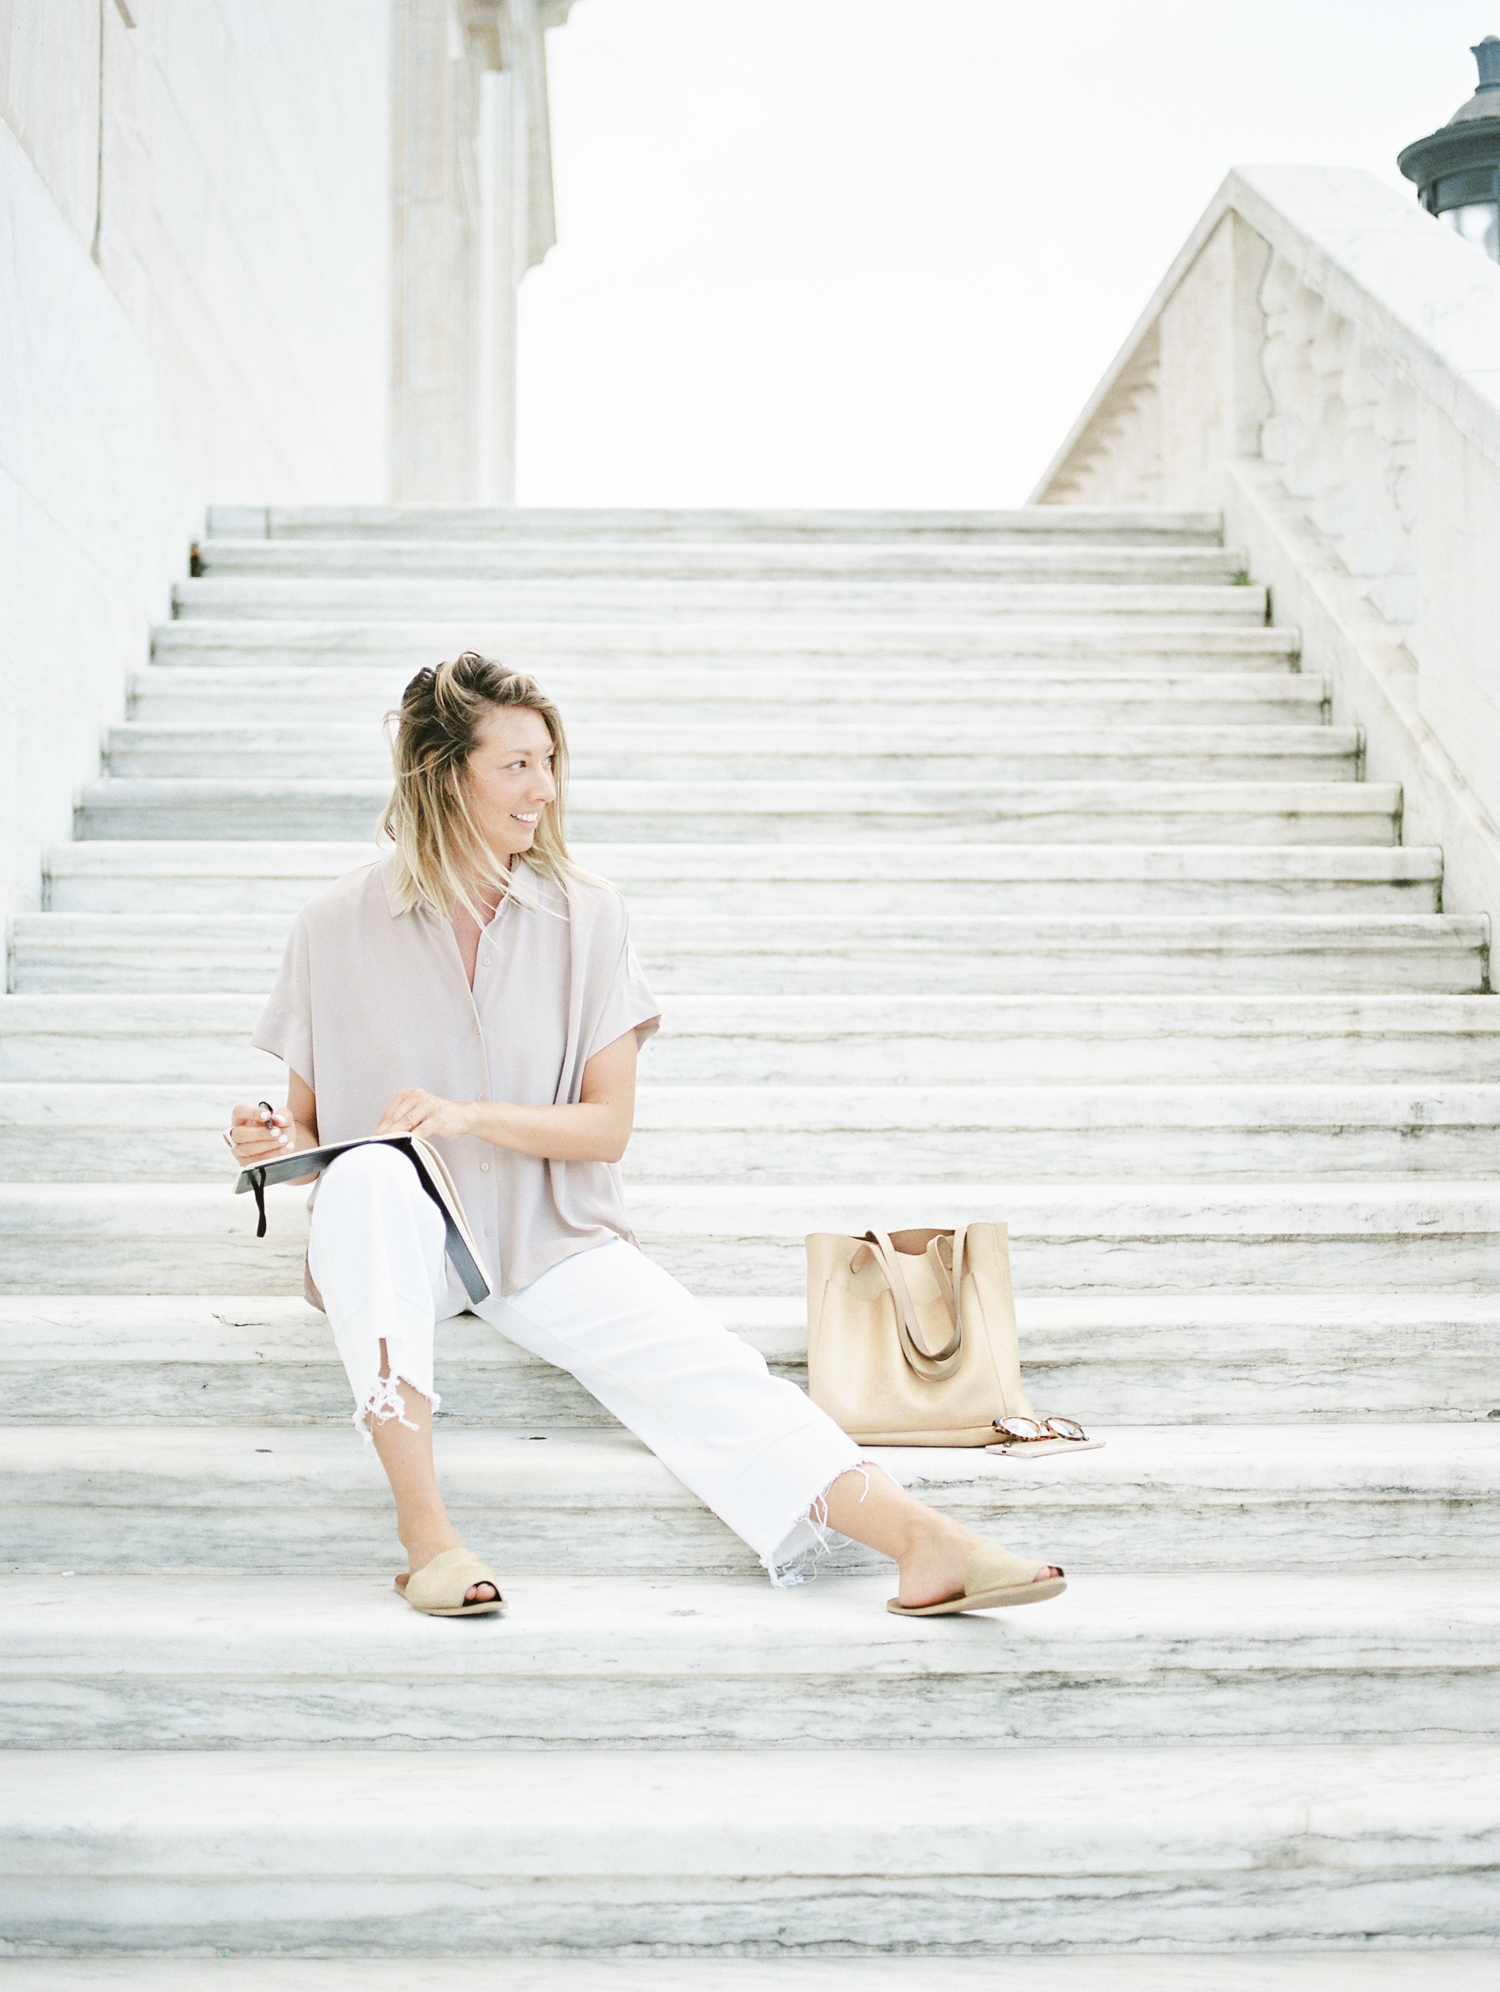 A creative female entrepreneur and designer sits on the steps of the Art Institute in Detroit to sketch during her brand photos